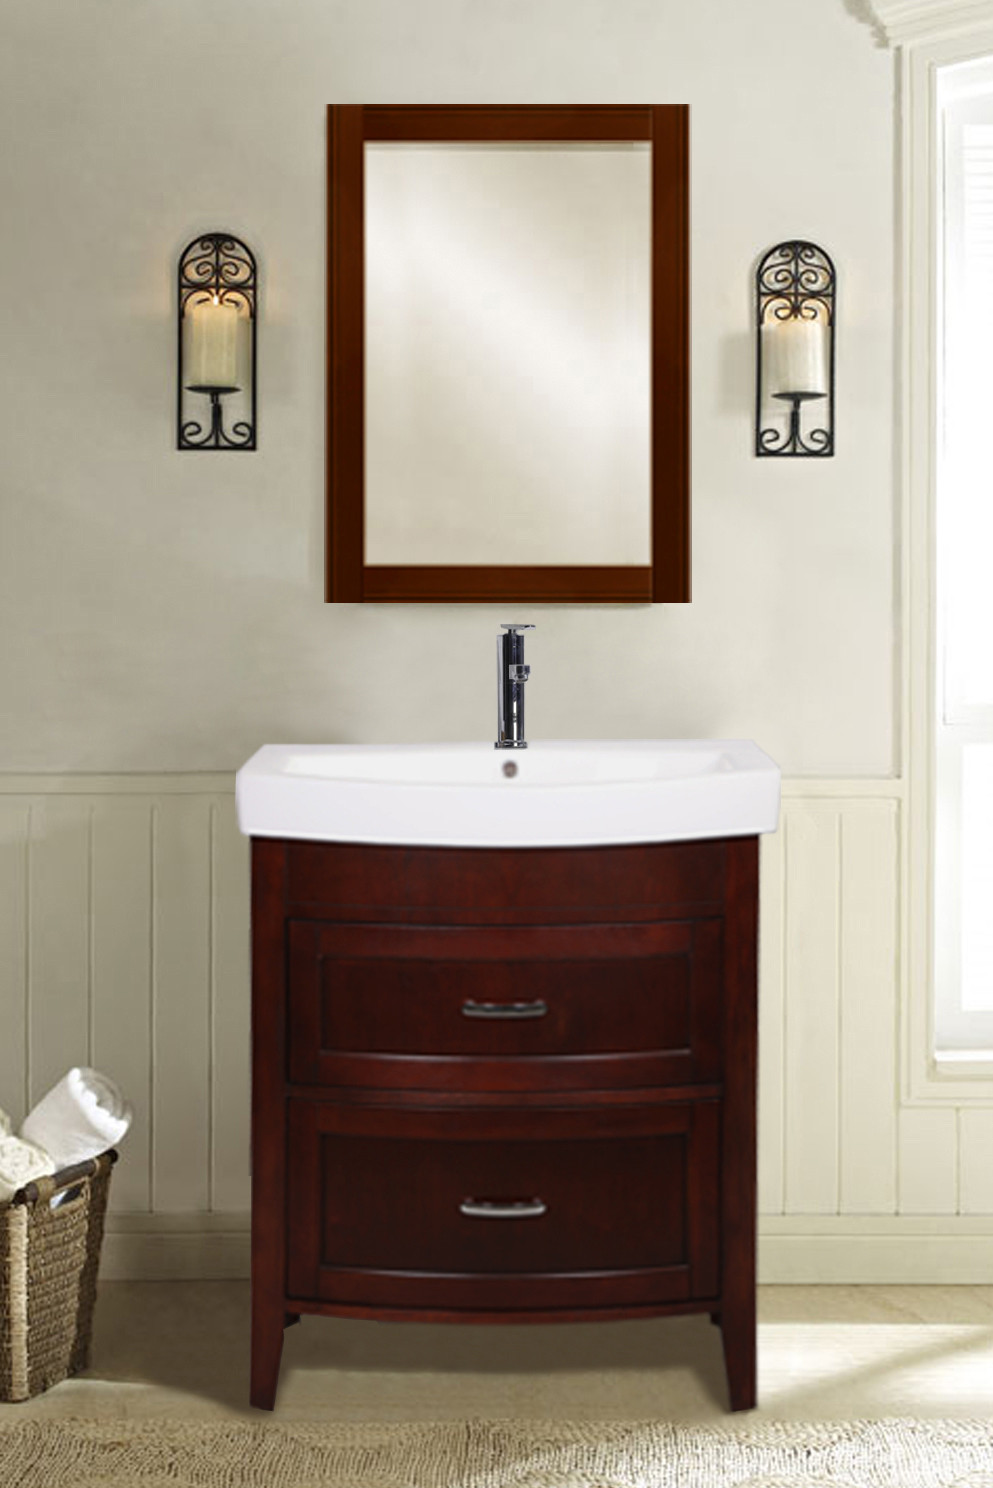 Empire industries a2402b 24 inch freestanding vanity with Empire bathrooms